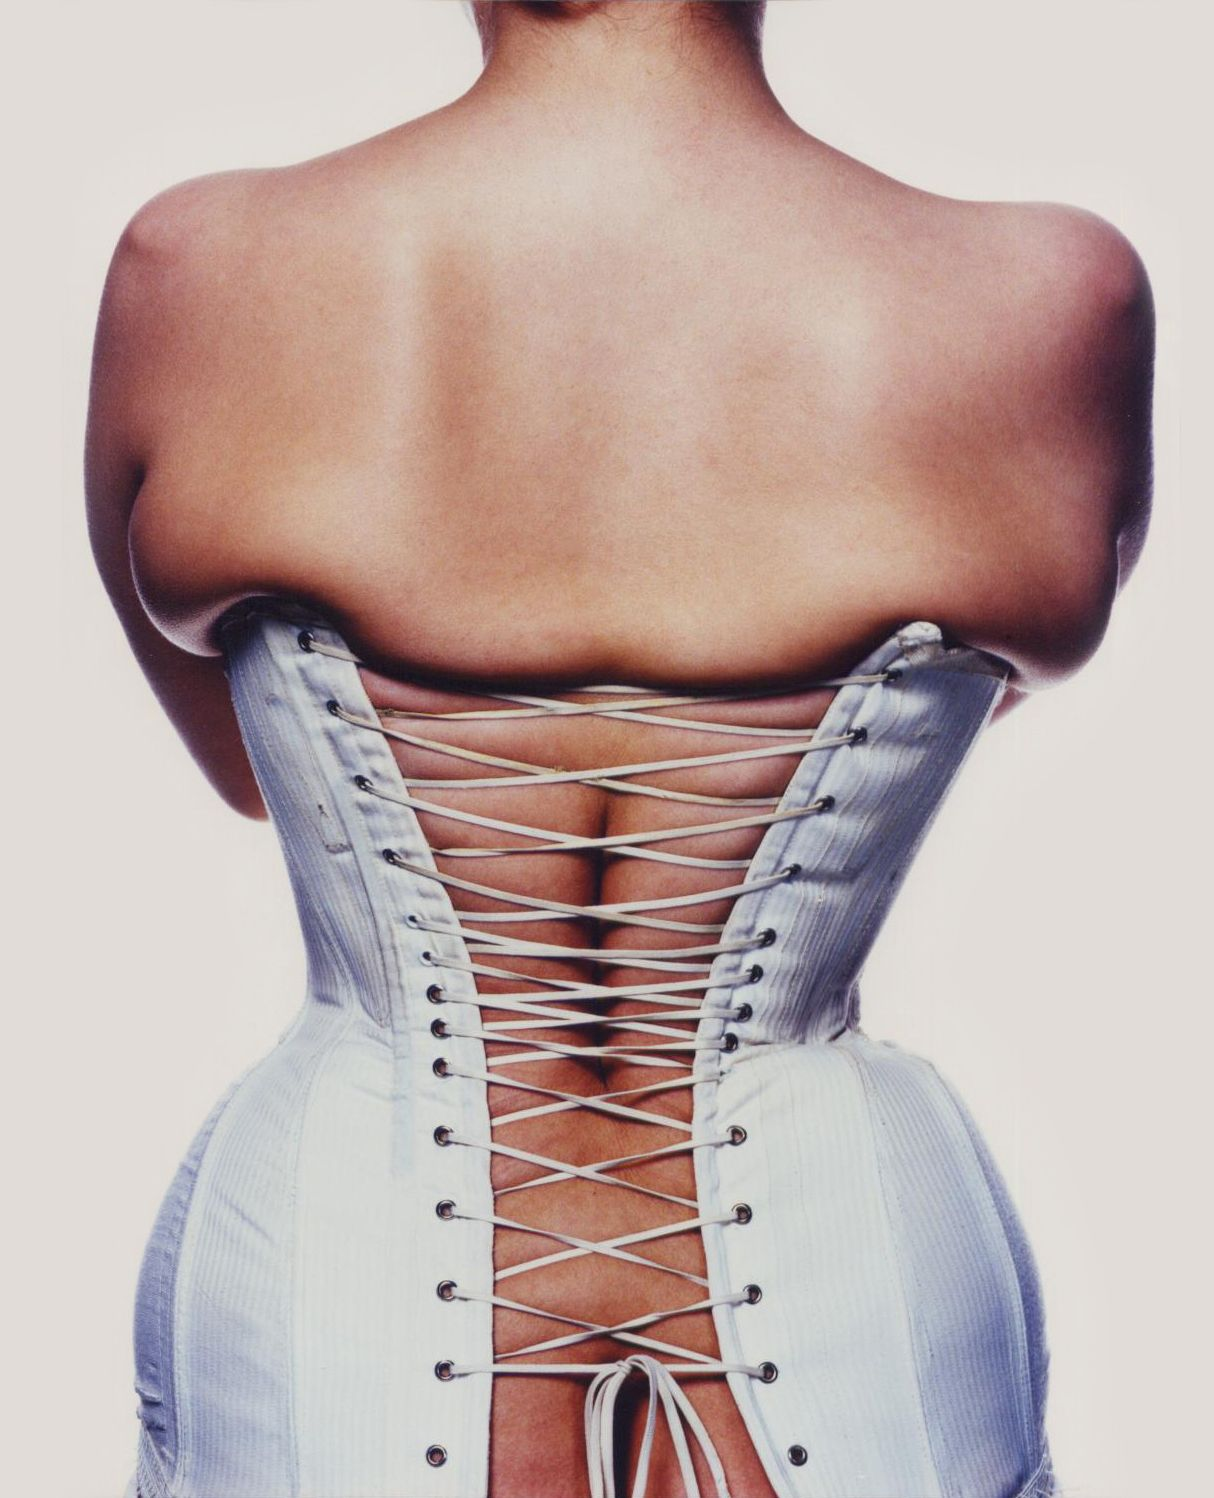 Some of My 1990s Art College Degree Fashion Photography | Corset, 1994 - Catherine Summers